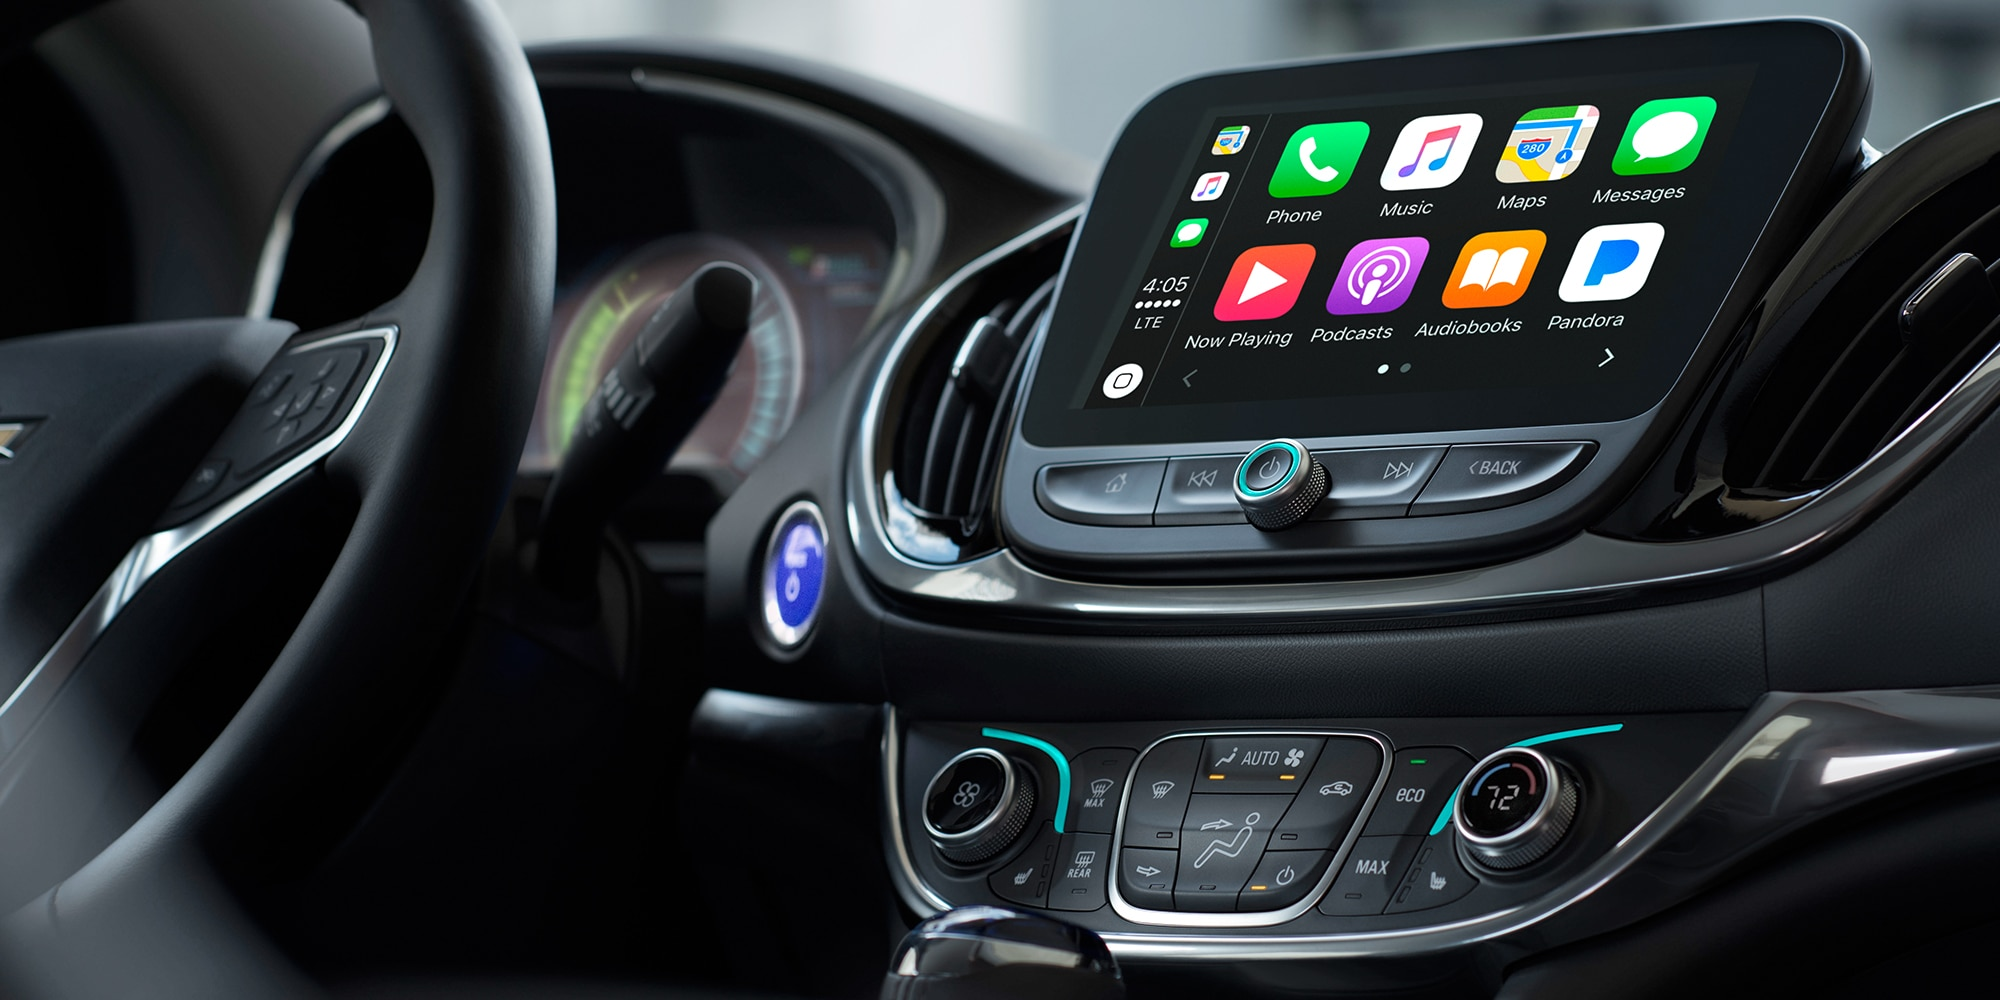 Tecnología del híbrido para enchufar Volt 2018: Apple CarPlay